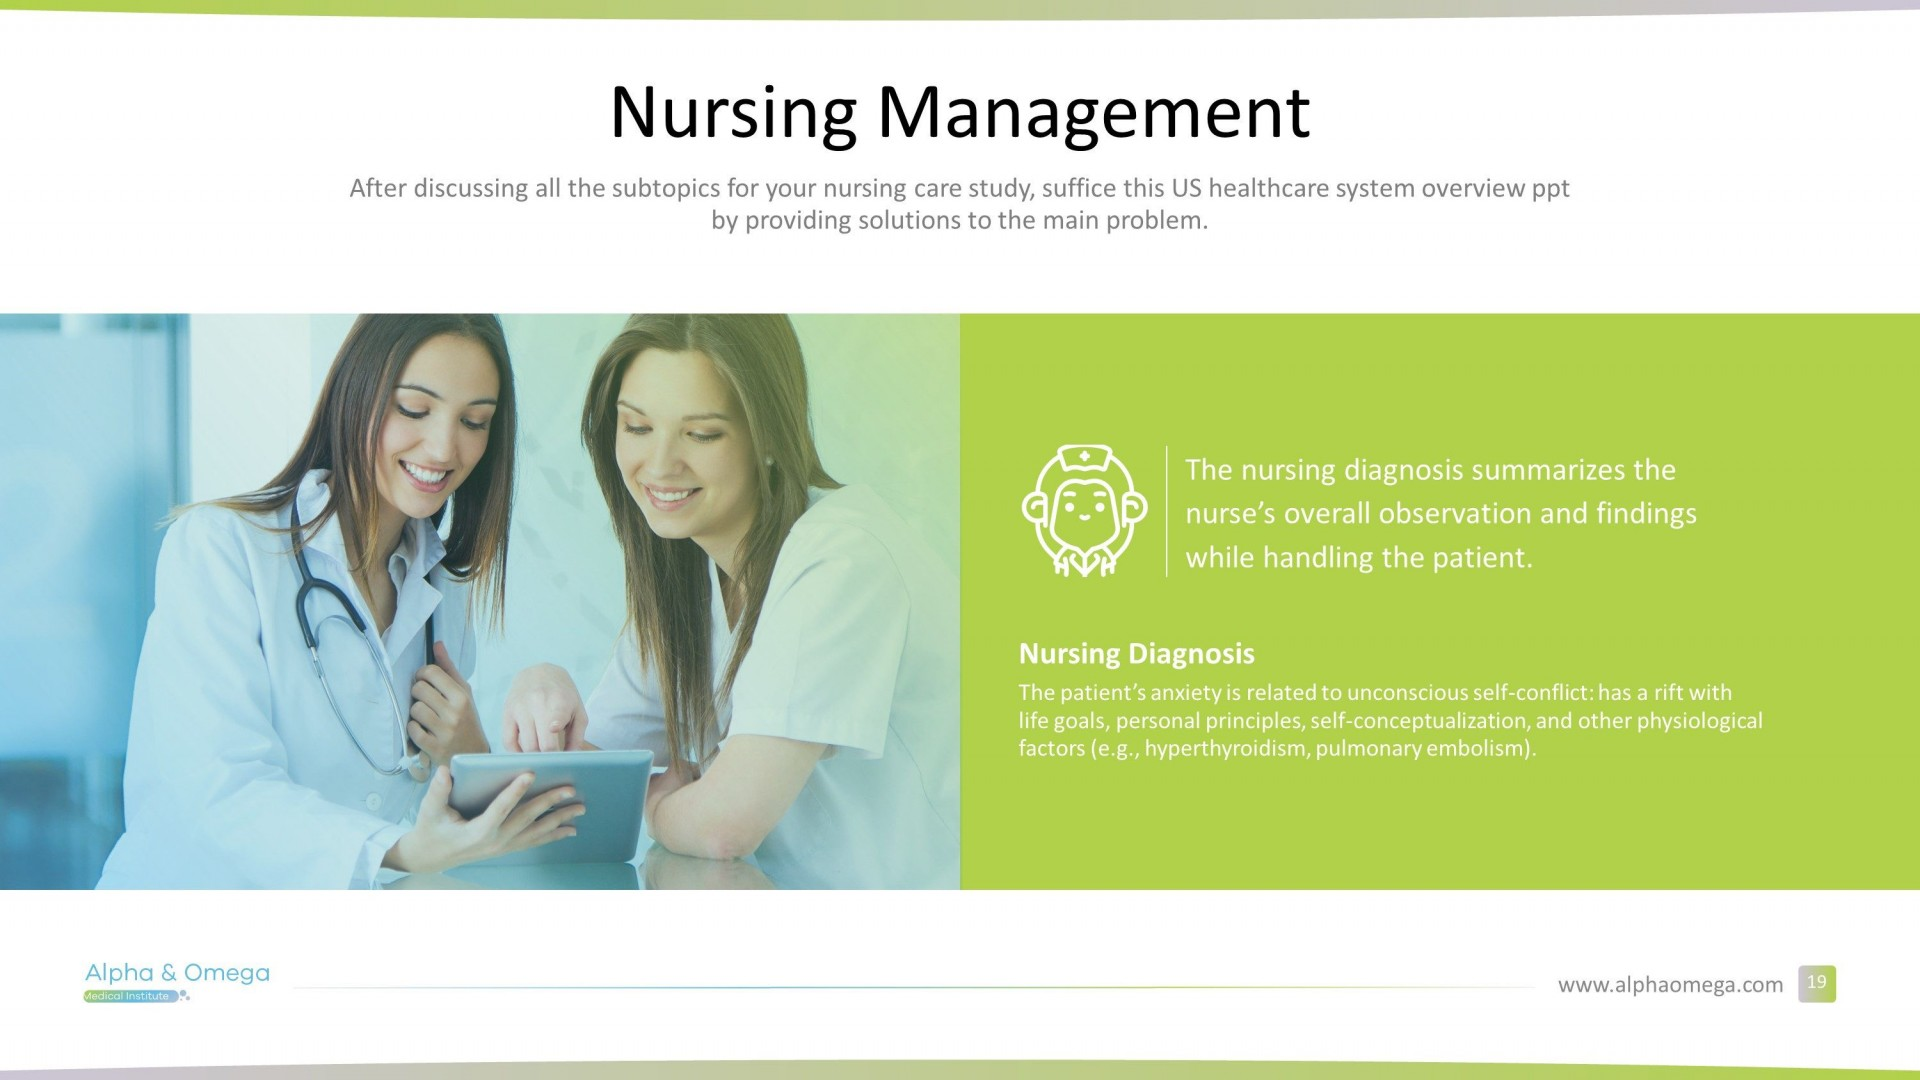 006 Impressive Free Nursing Powerpoint Template Highest Quality  Education Download1920